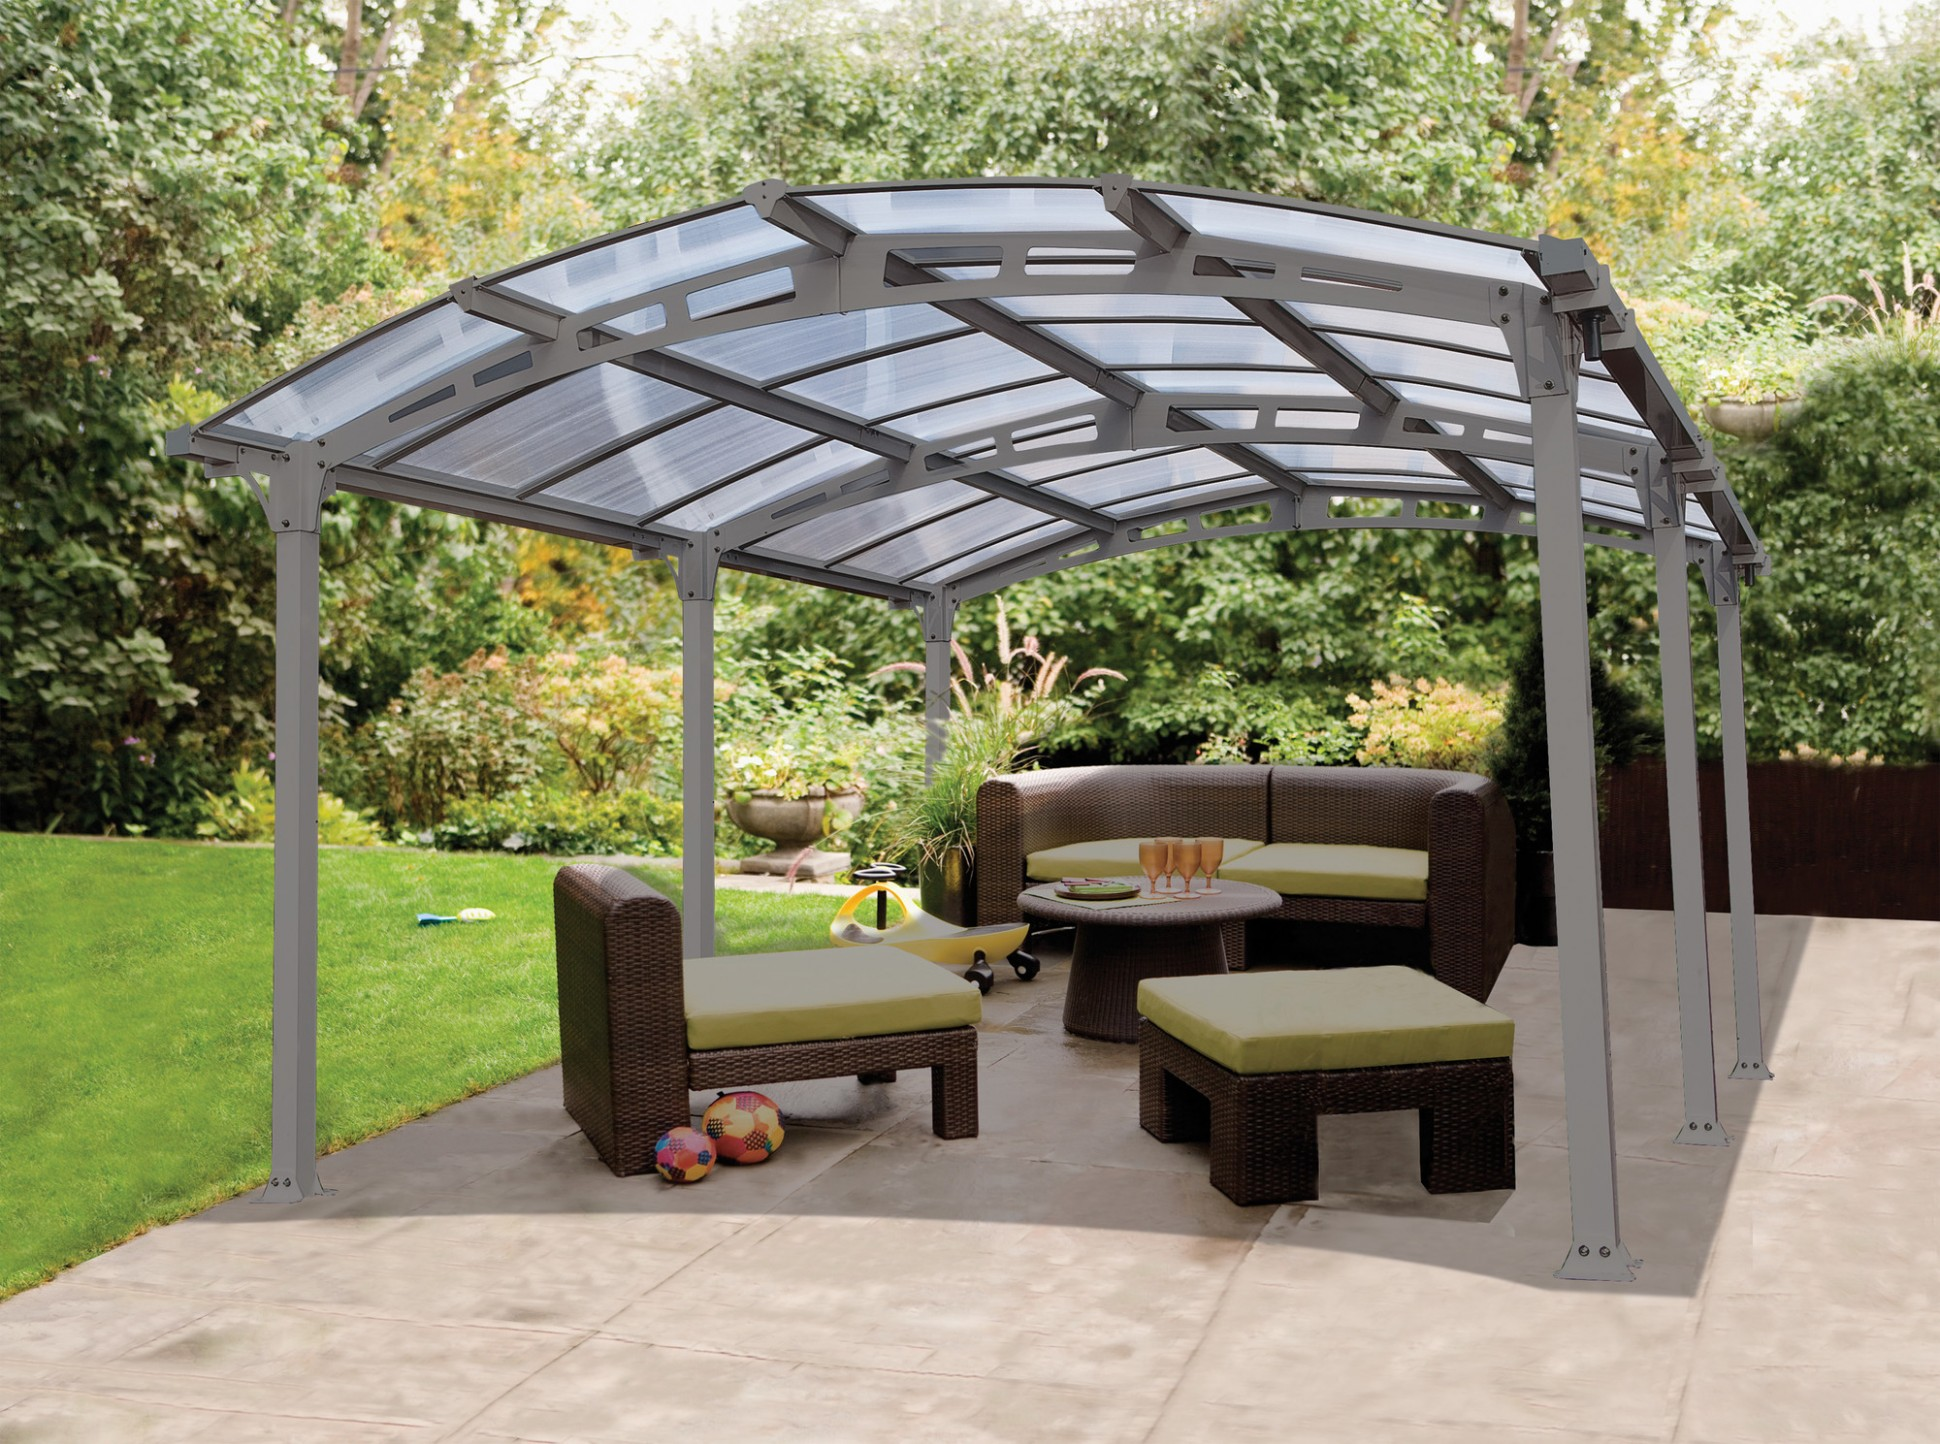 Top Seven Fantastic Experience Of This Year's Carport Covers | carport covers